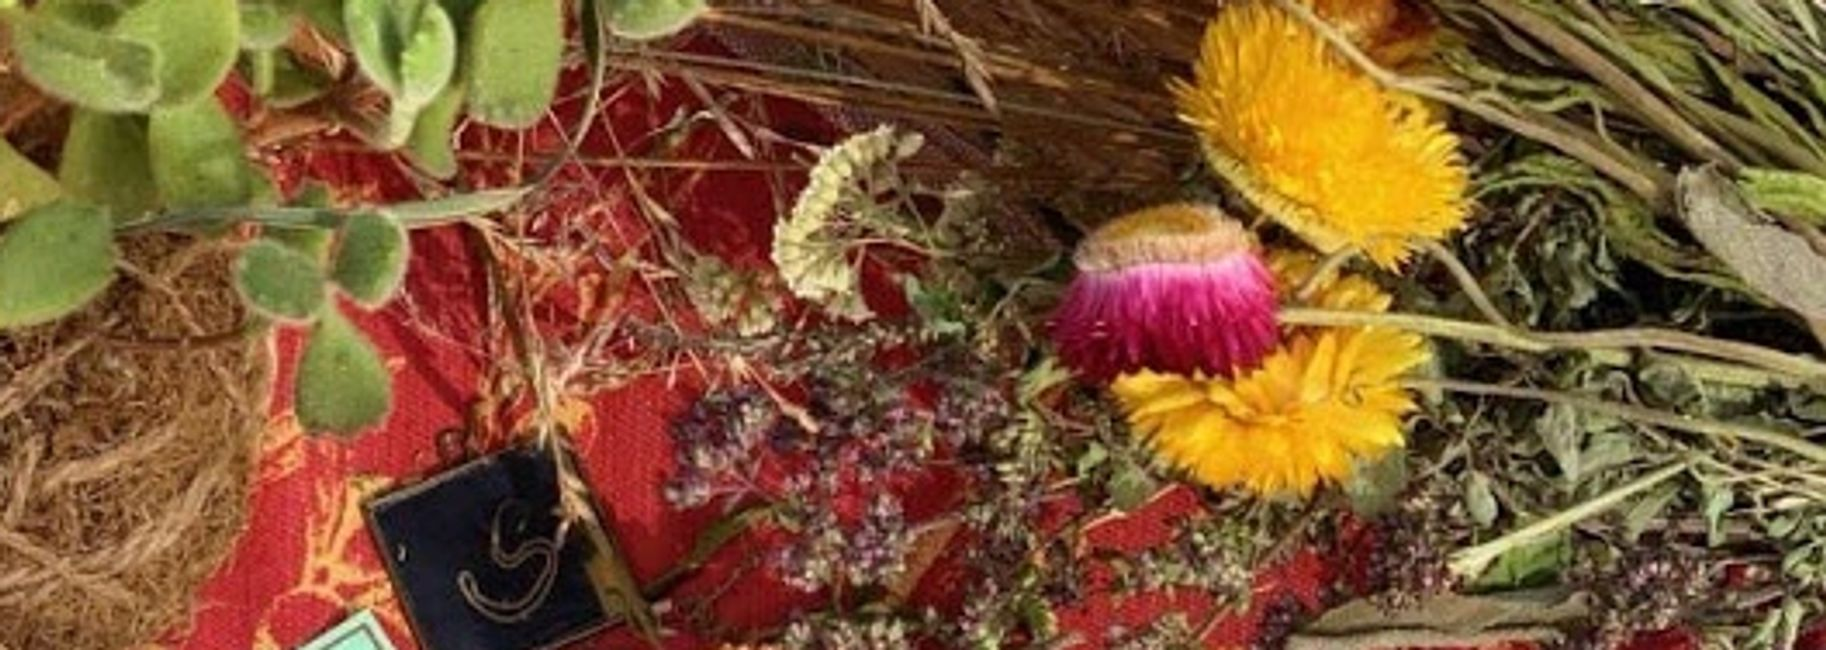 Dried organic strawflower, lavender and yarrow lie bunched on a colorful market table.